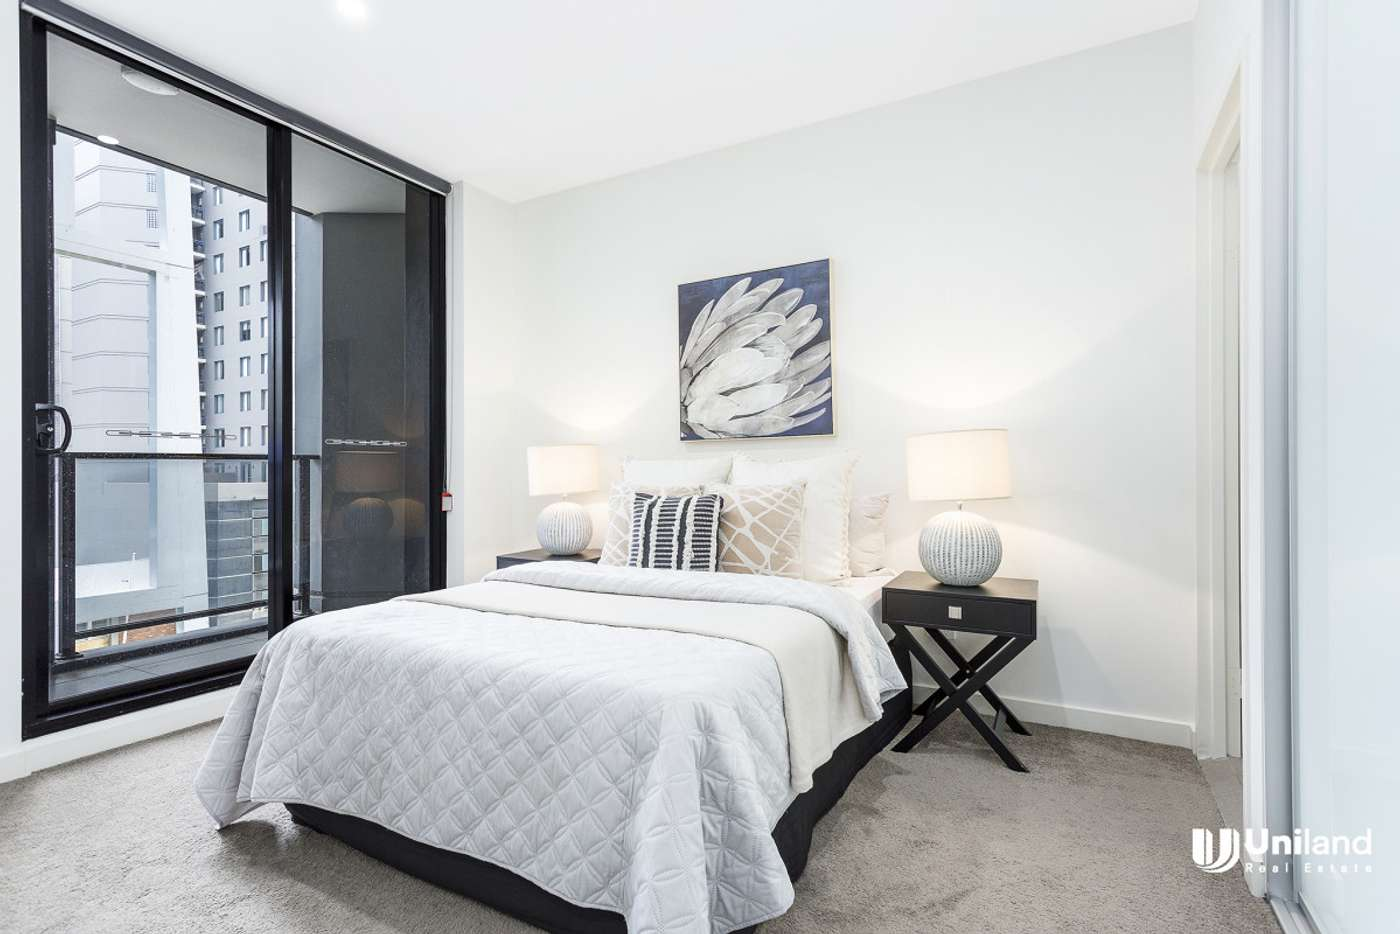 Fifth view of Homely apartment listing, 302/11 Hassall Street, Parramatta NSW 2150